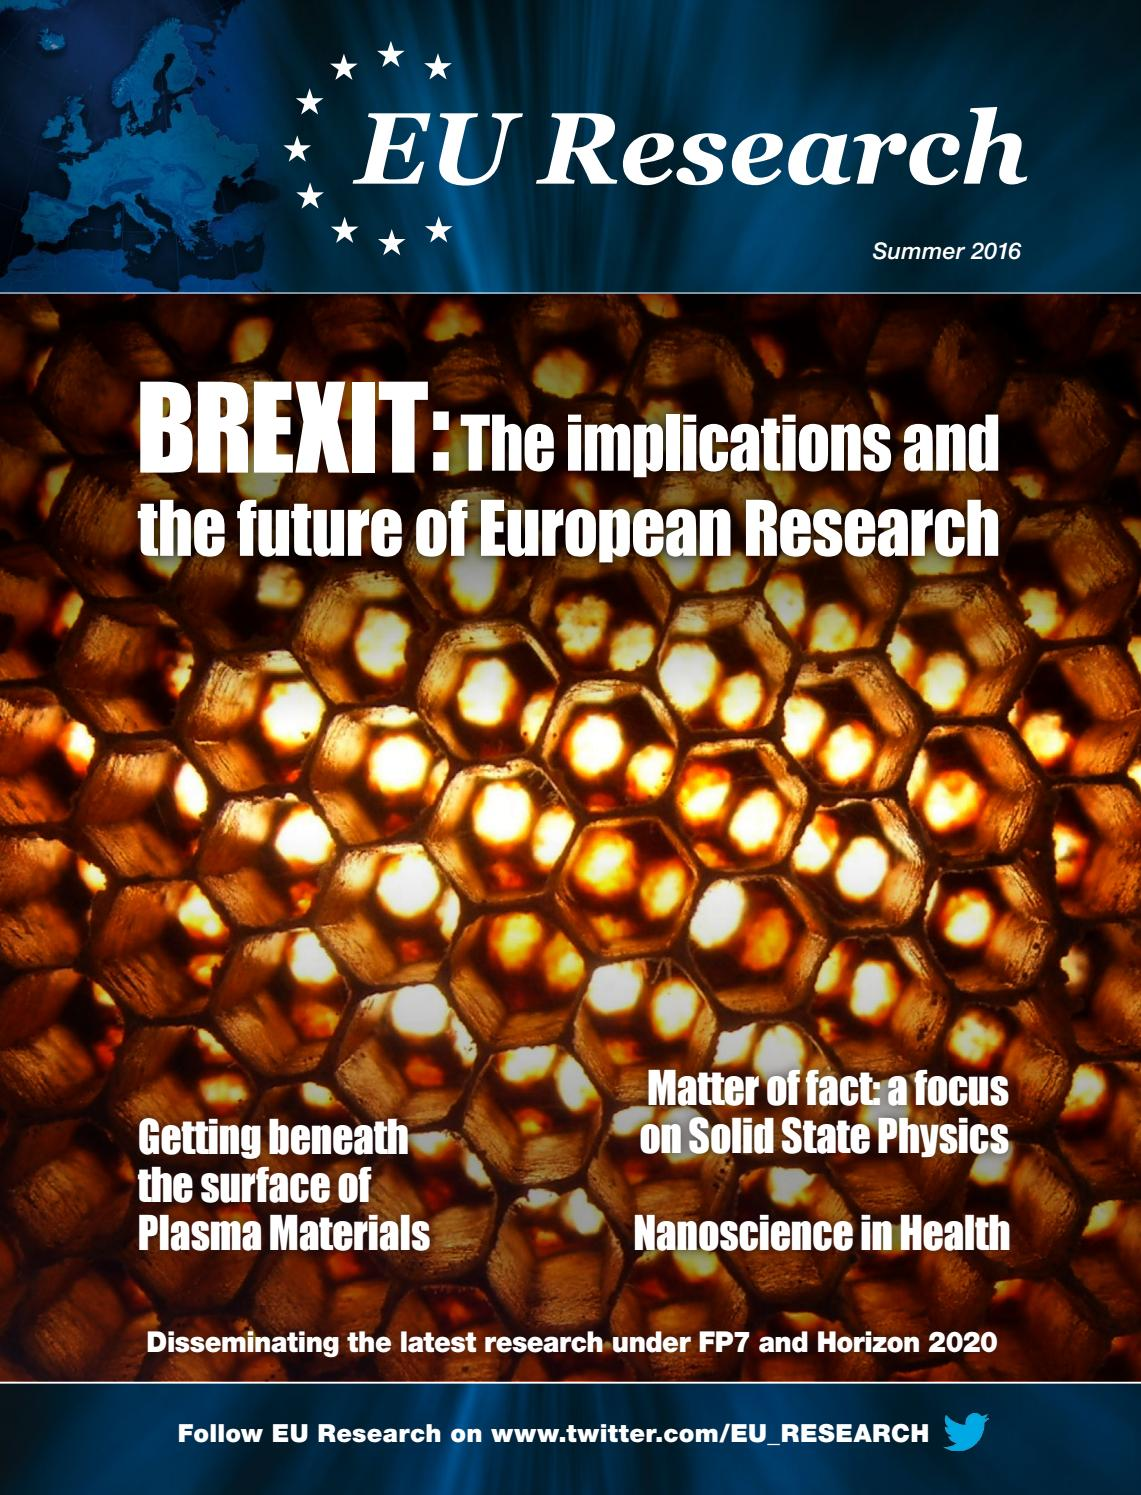 EU Research SummerAutumn 2016 by Blazon Publishing and